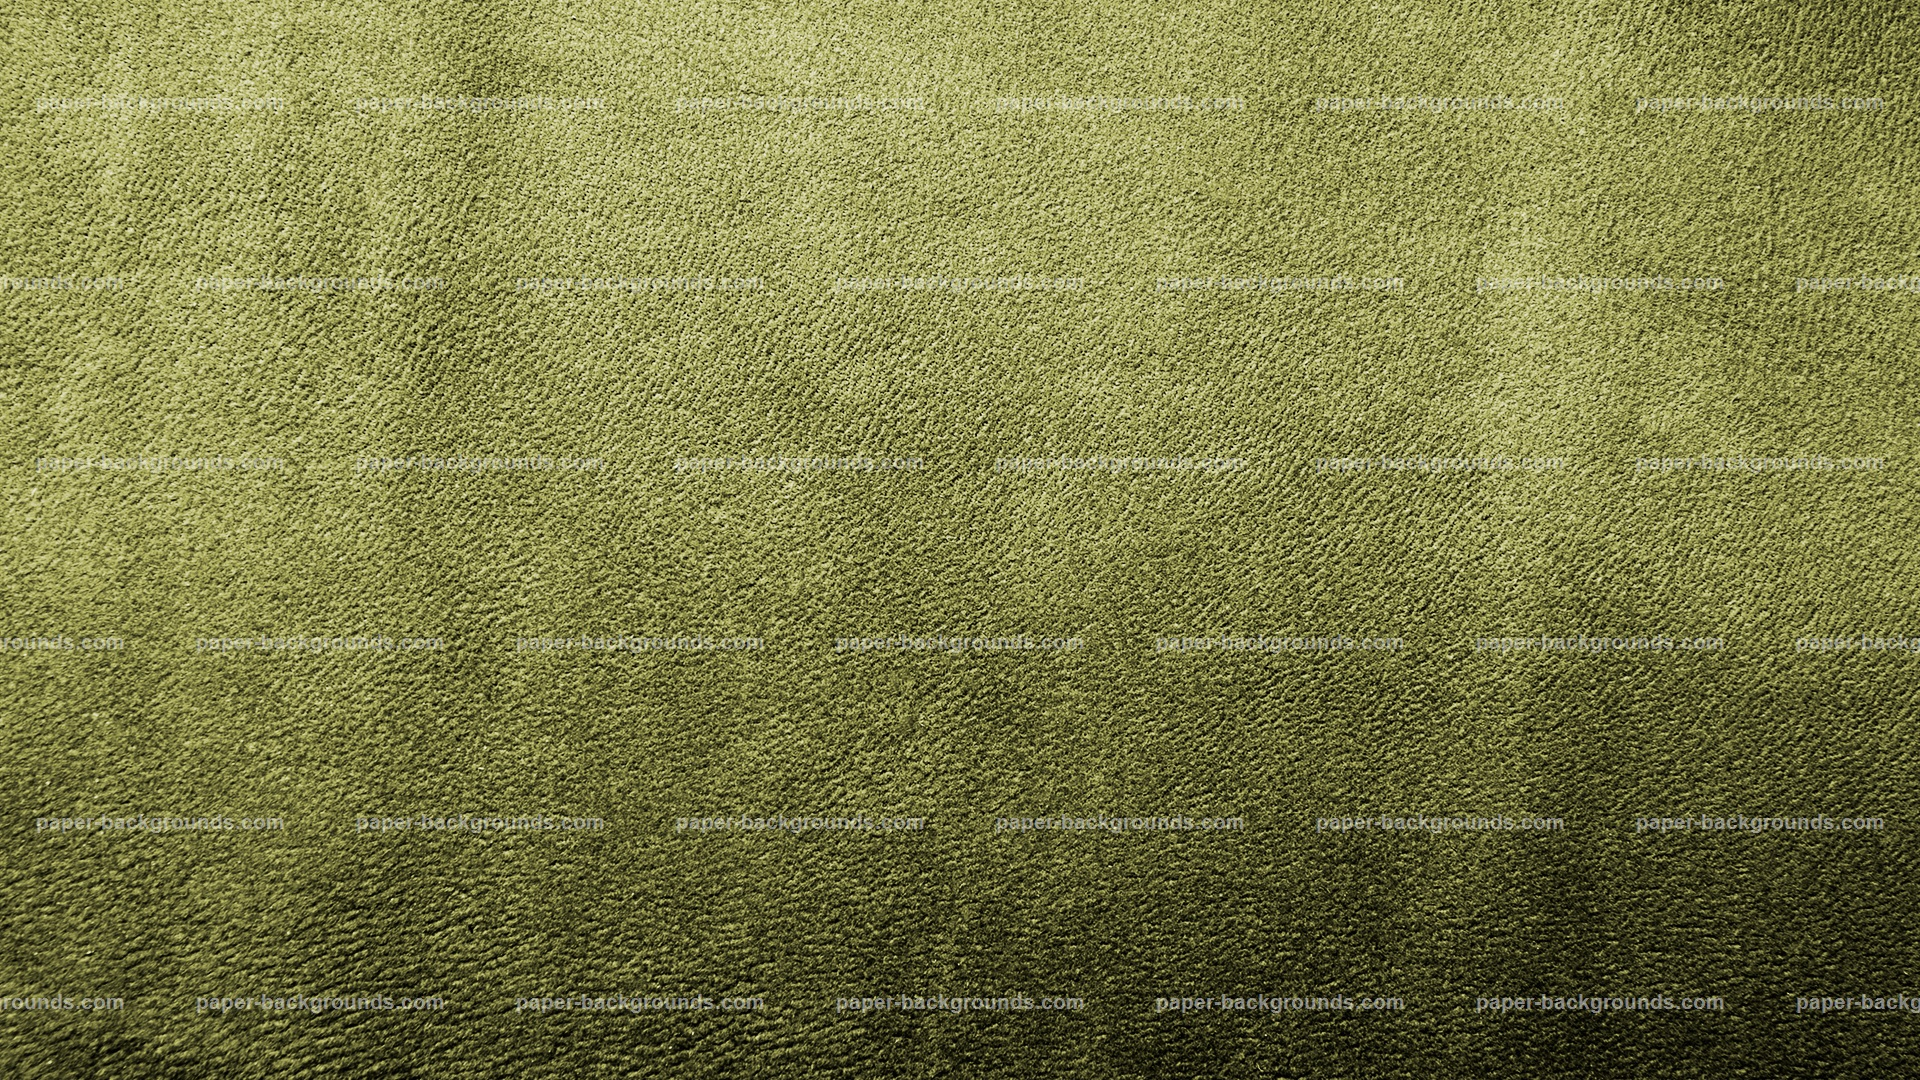 Paper Backgrounds Army Green Soft Leather Background